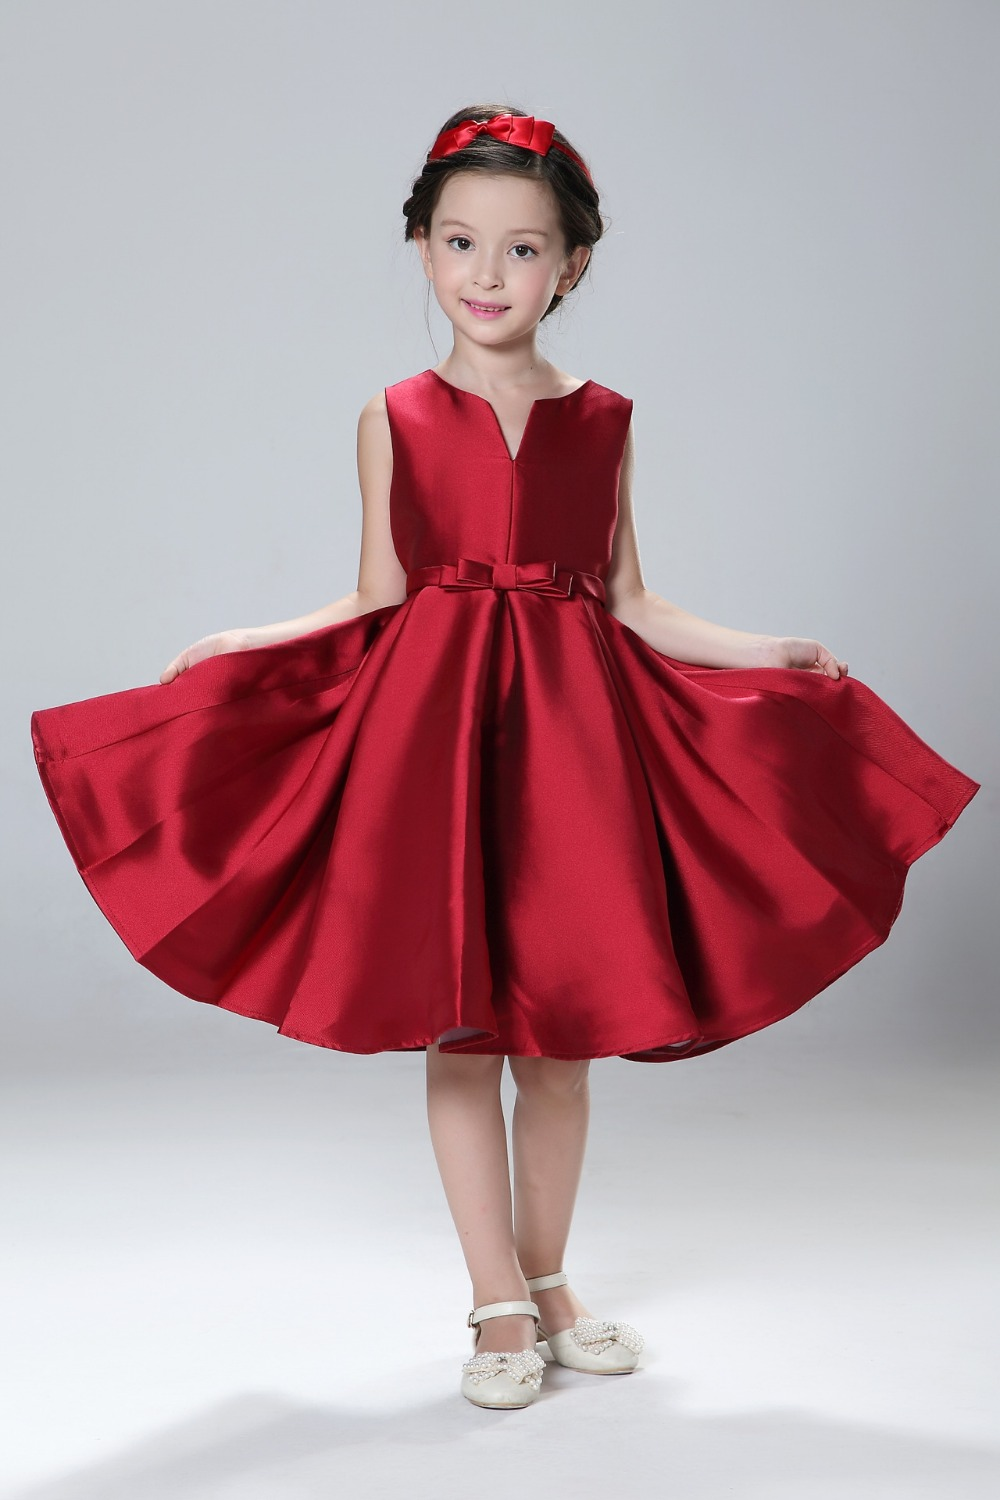 Hot Sale 2016  Girls Dress Sale red  New Arrival Costume Fashion Cotton and polyester  Children Party Clothes Ready In Stock плед texrepublic absolute 180 х 220 см 72122